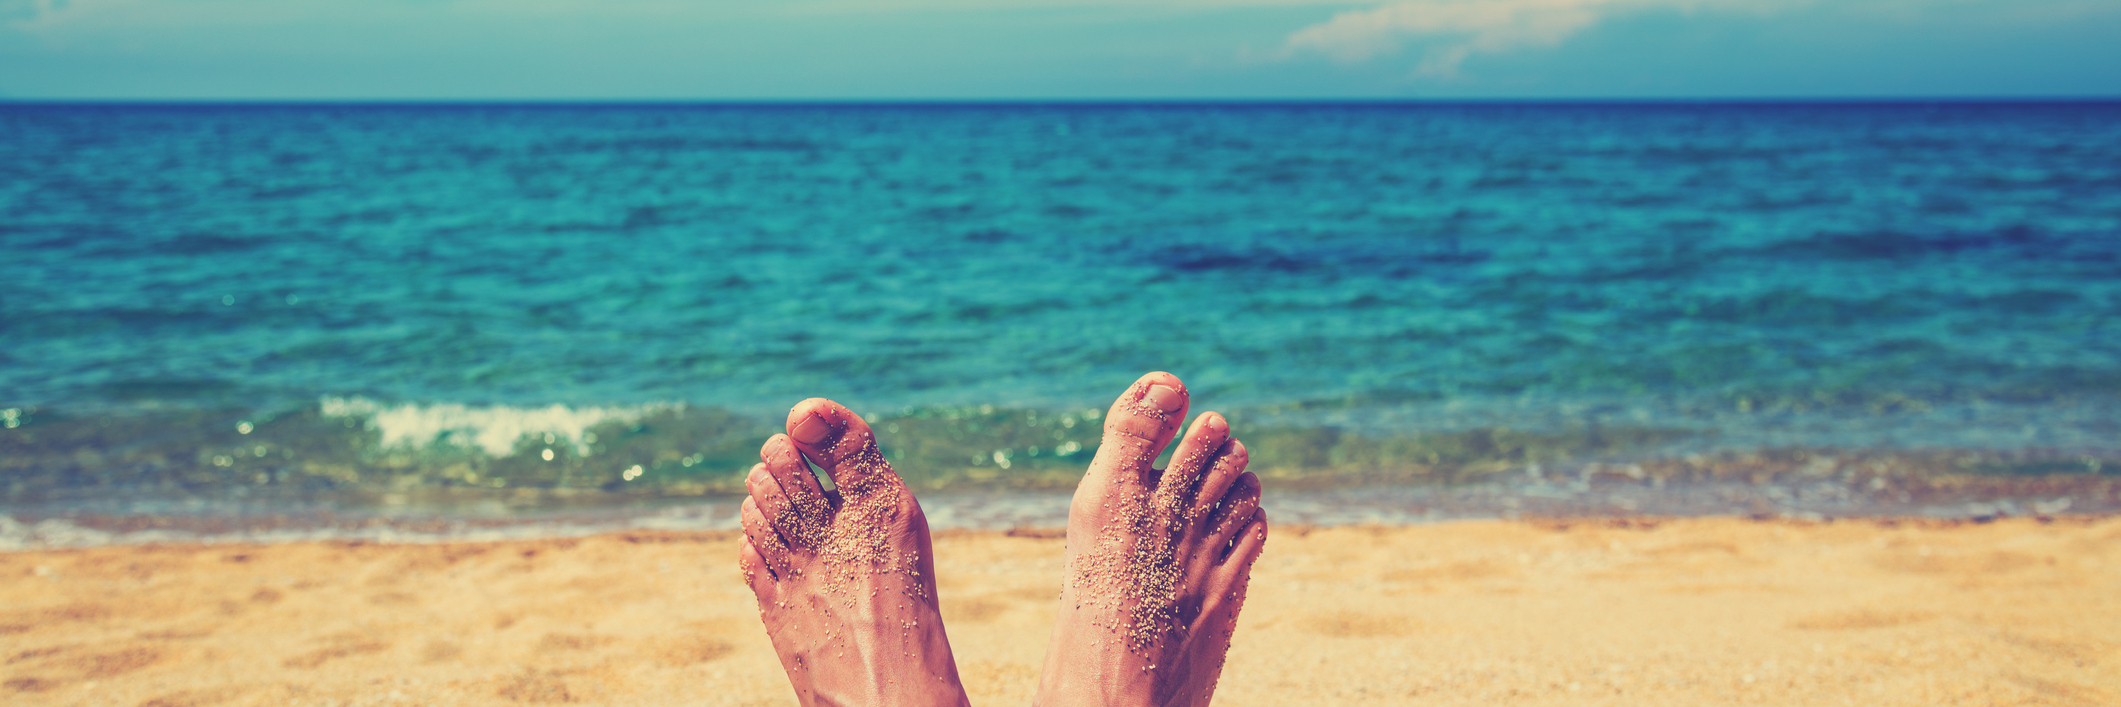 woman's feet relaxing on beach